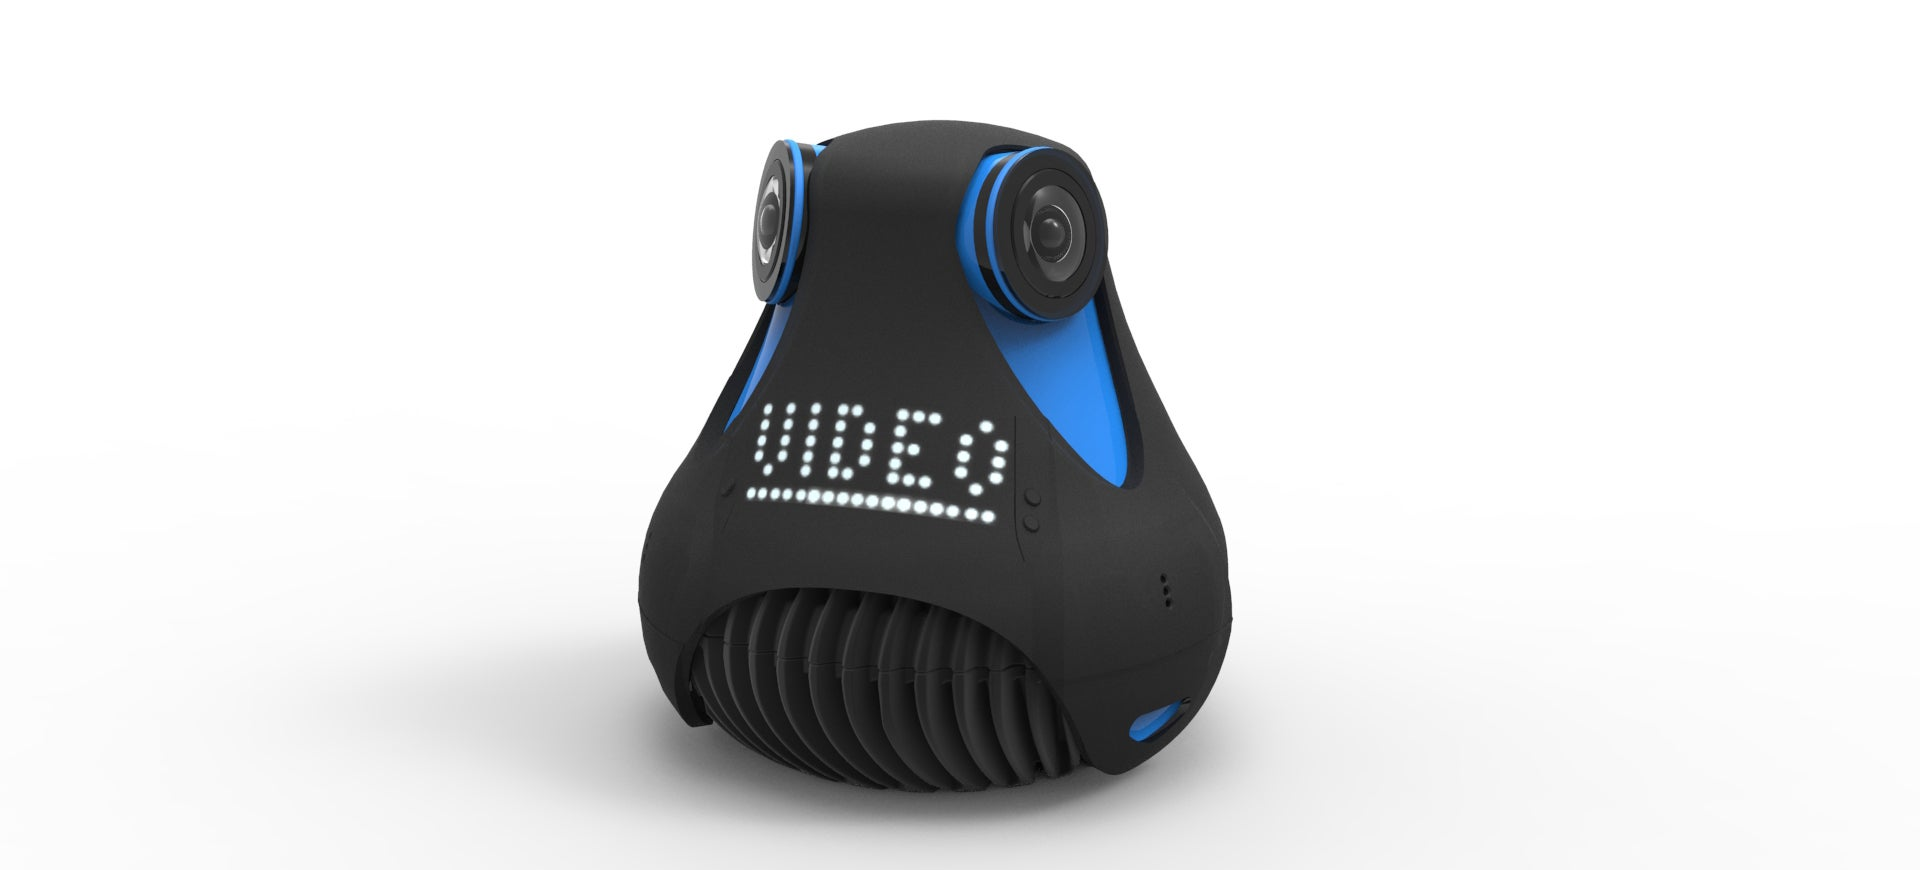 giroptic 39 s egg shaped 360cam captures perfect hd video spheres gizmodo australia. Black Bedroom Furniture Sets. Home Design Ideas